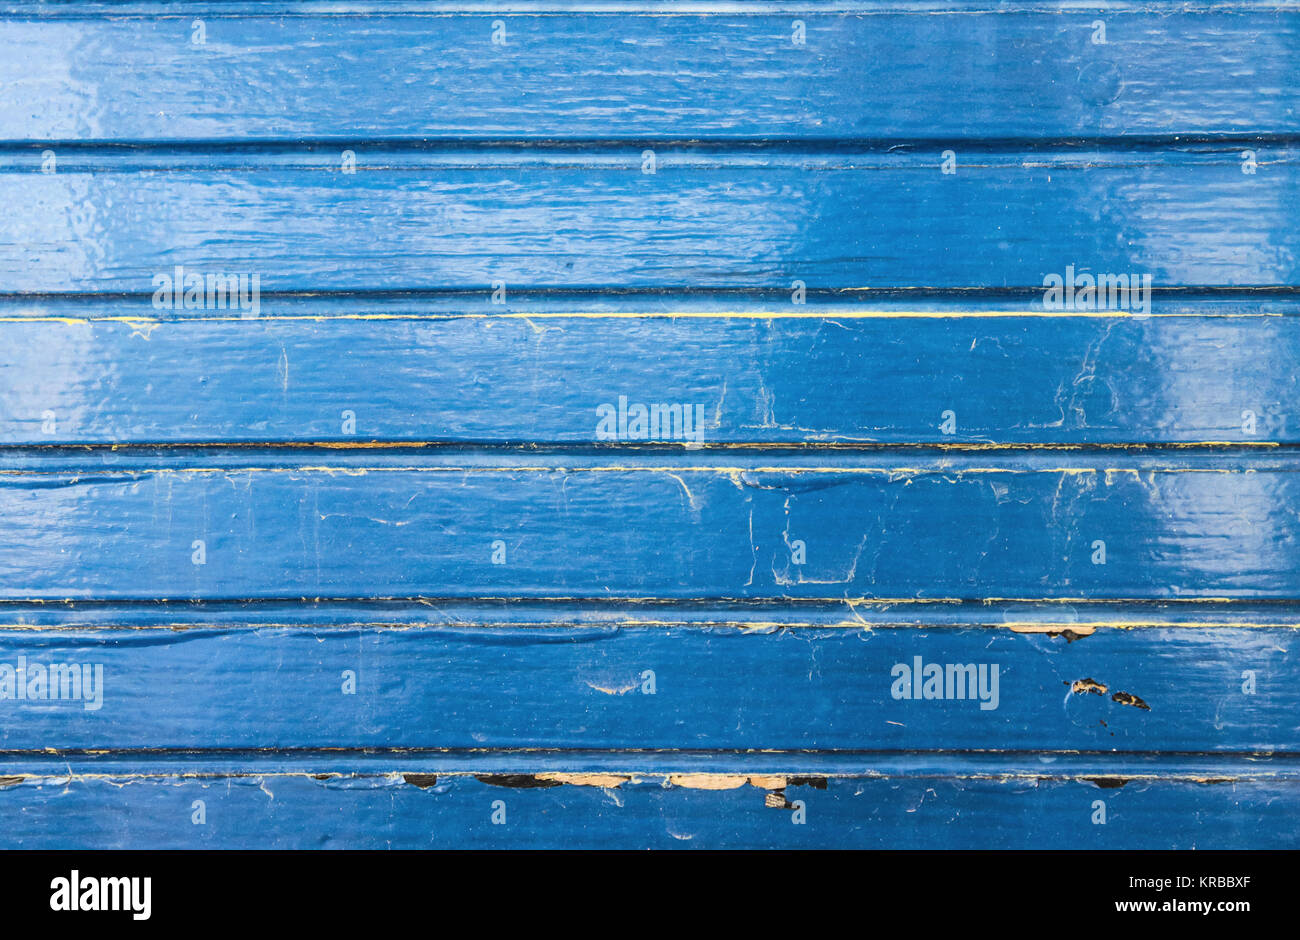 Grunge Blue Painted Wood from Wooden Boat Background with cracks and scrapes and water stains - Stock Image